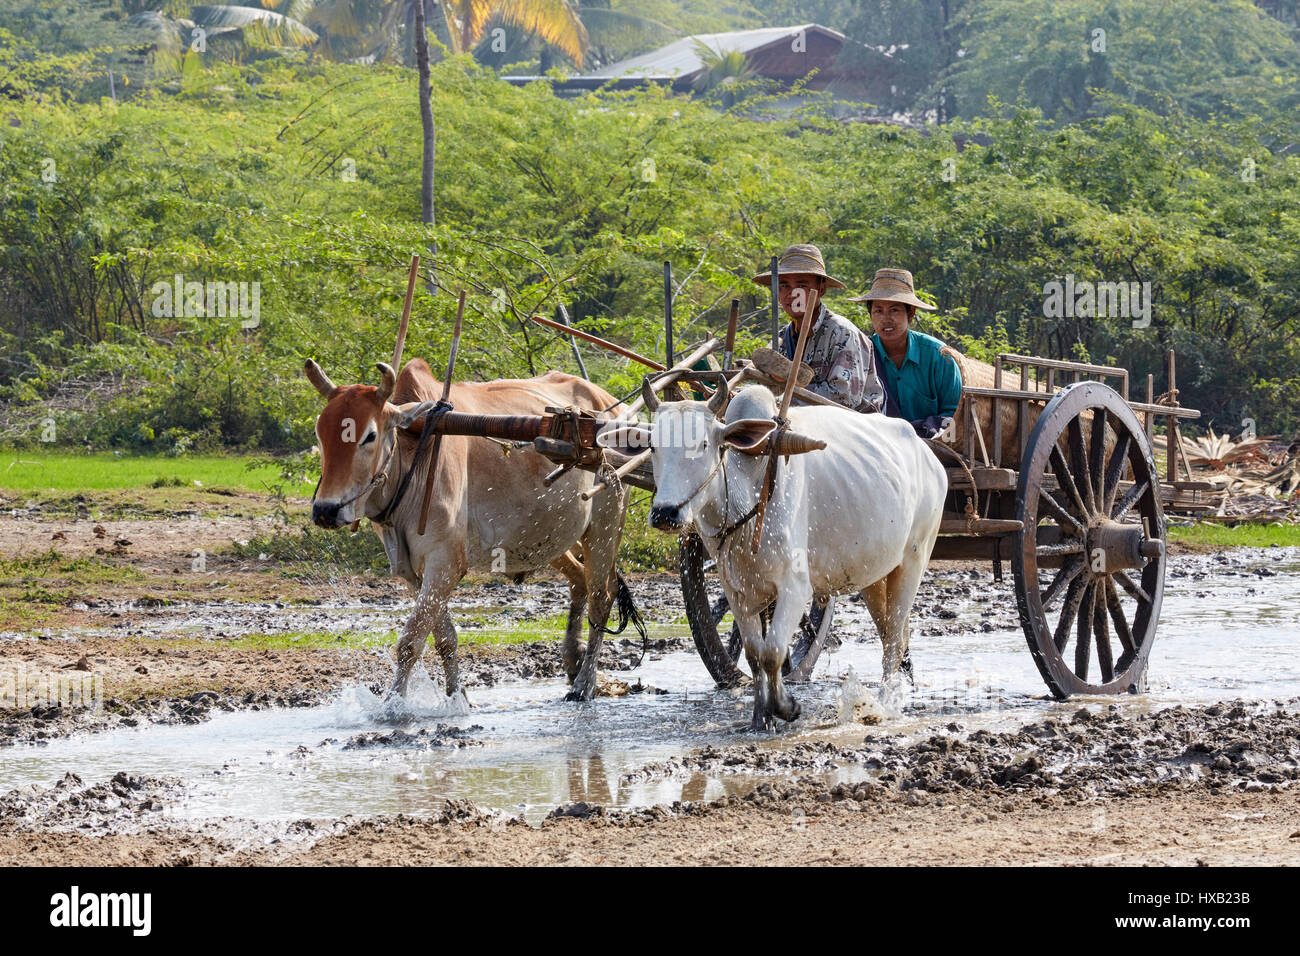 Locals on ox cart in Shwebo, Myanmar, Asia - Stock Image